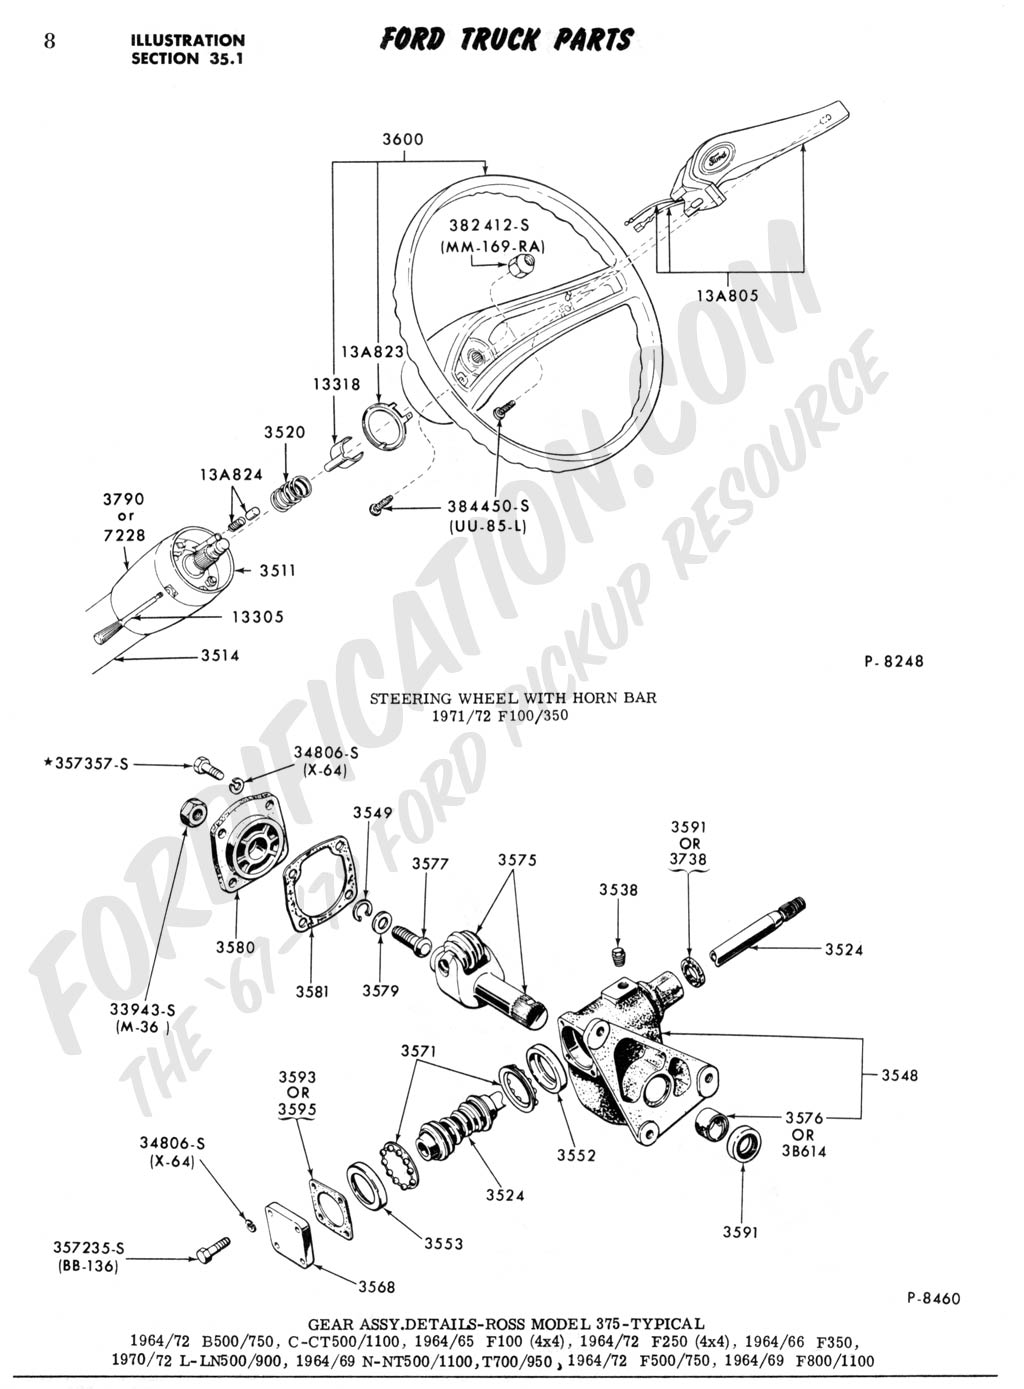 Pwrsteering Box Wd on 1972 Ford F100 Wiring Diagram